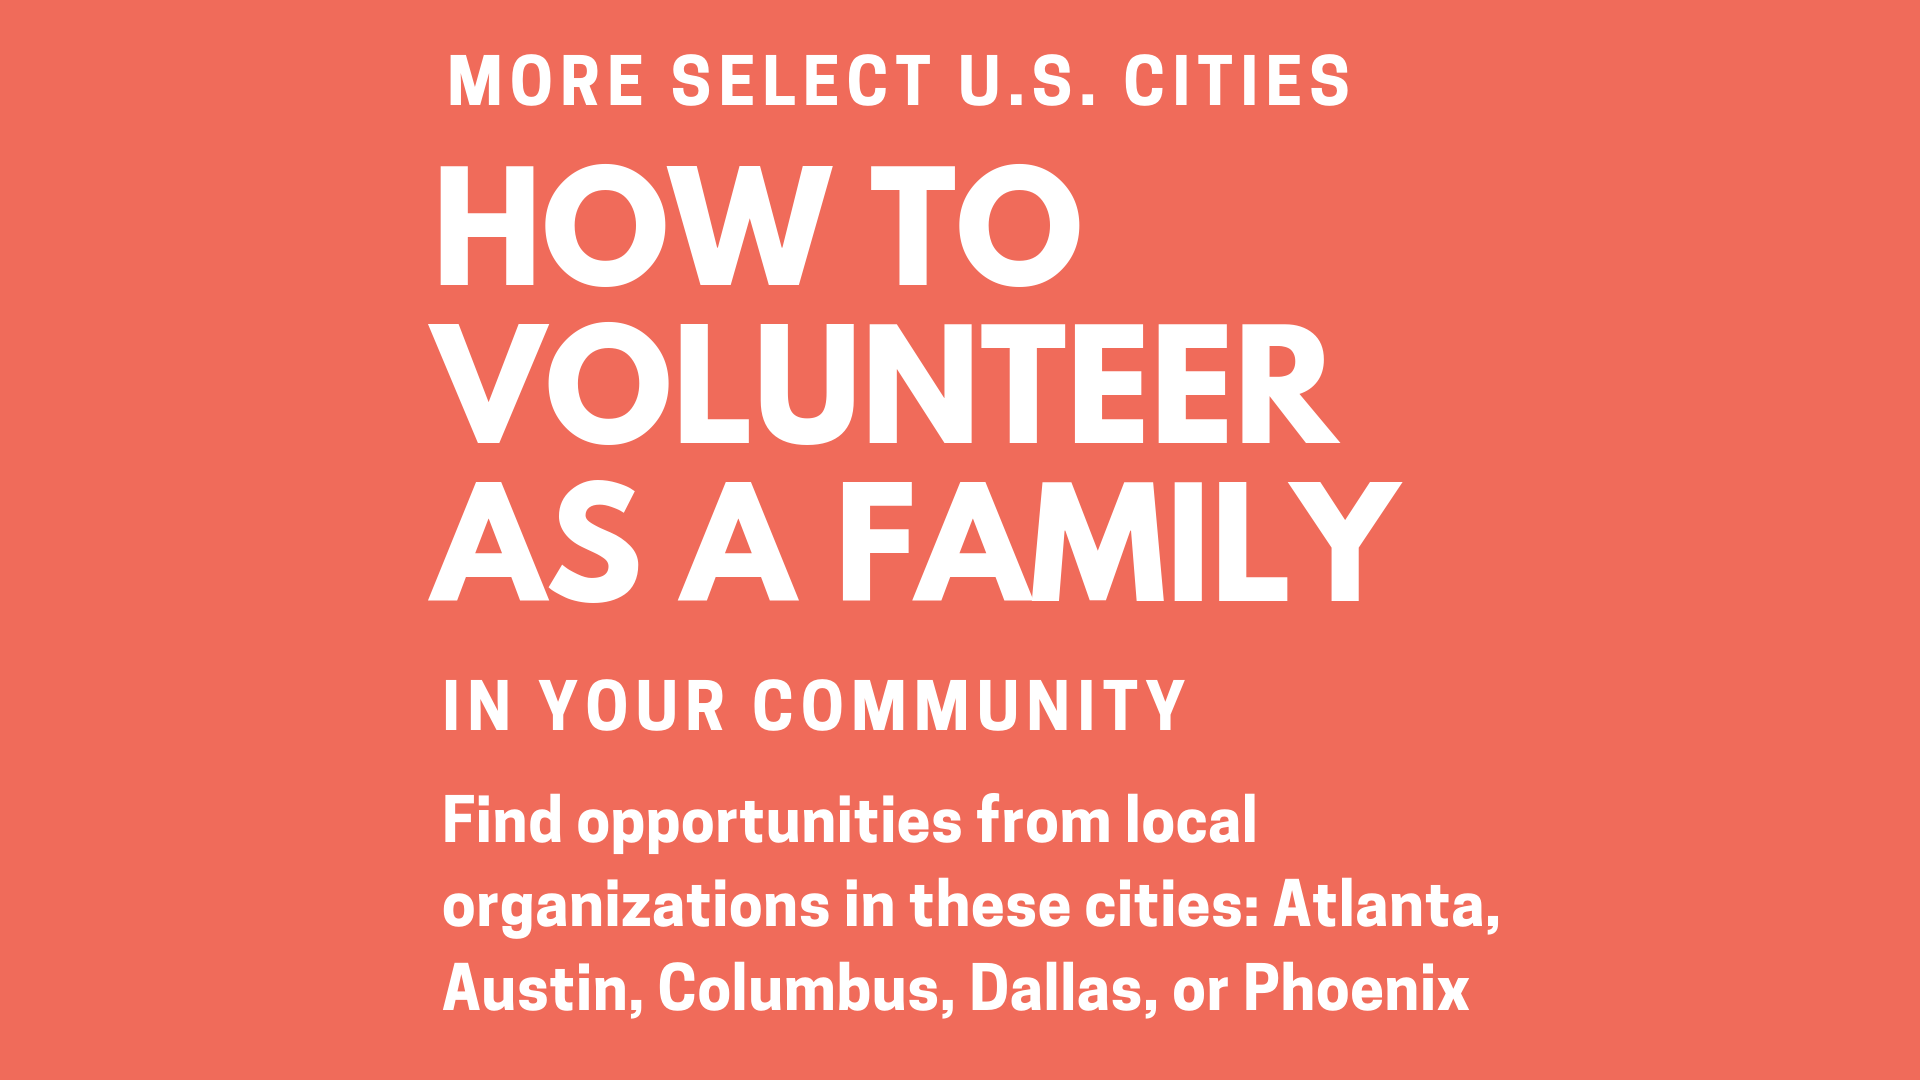 Find opportunities from local organizations in these cities: Atlanta, Austin, Dallas, and Phoenix